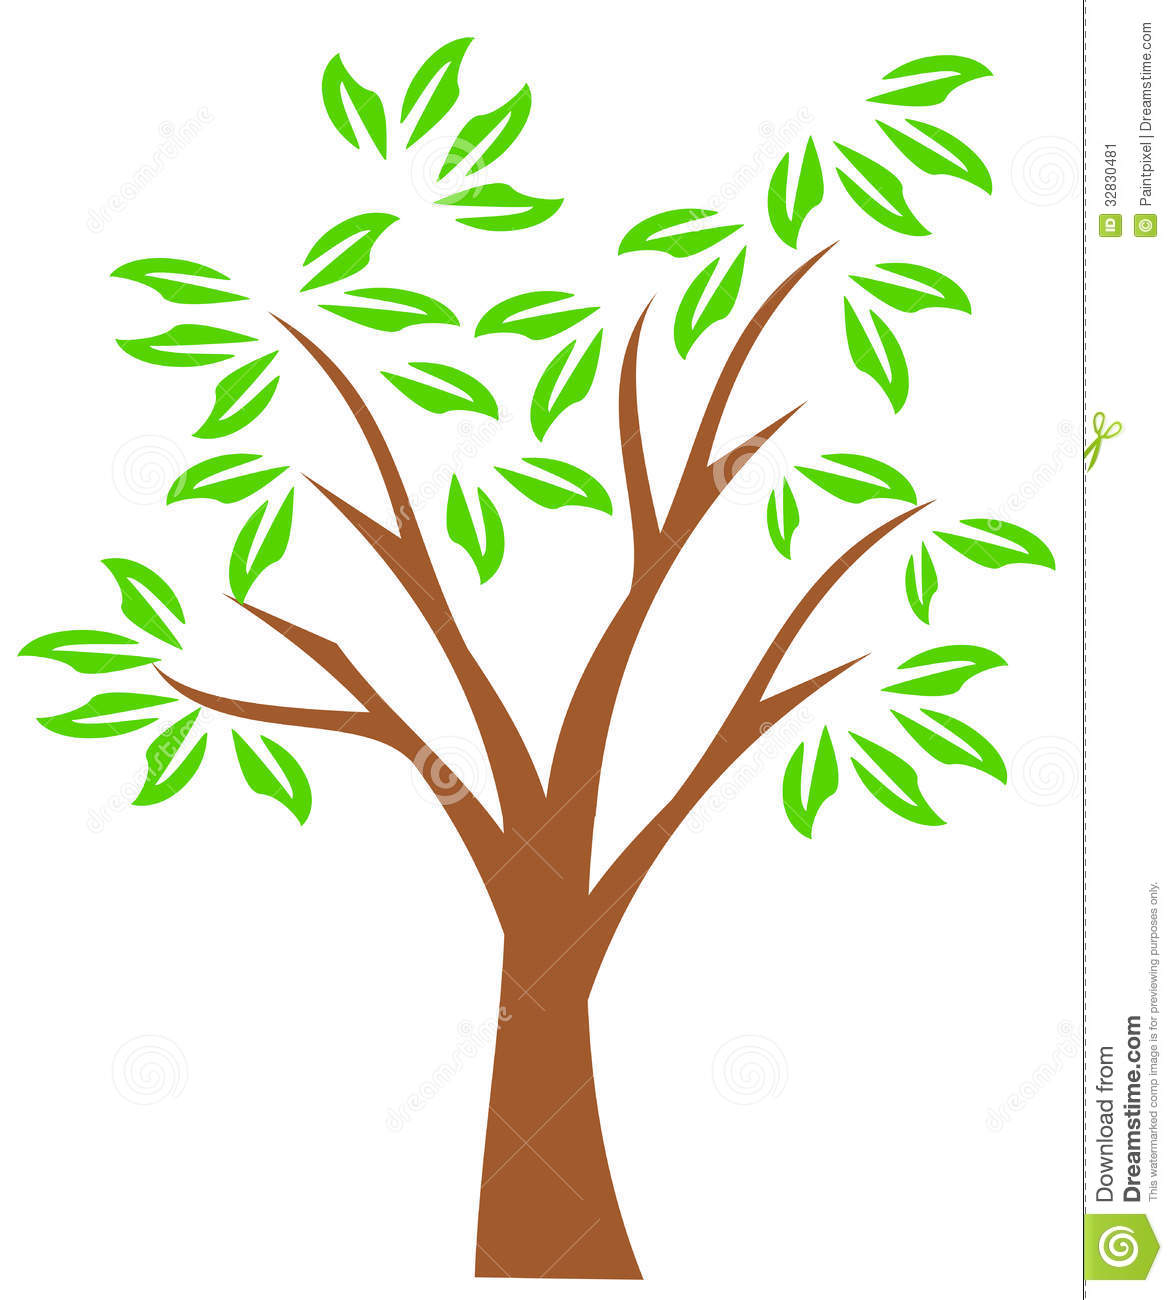 Branch clipart tree limb. Clip art branches black